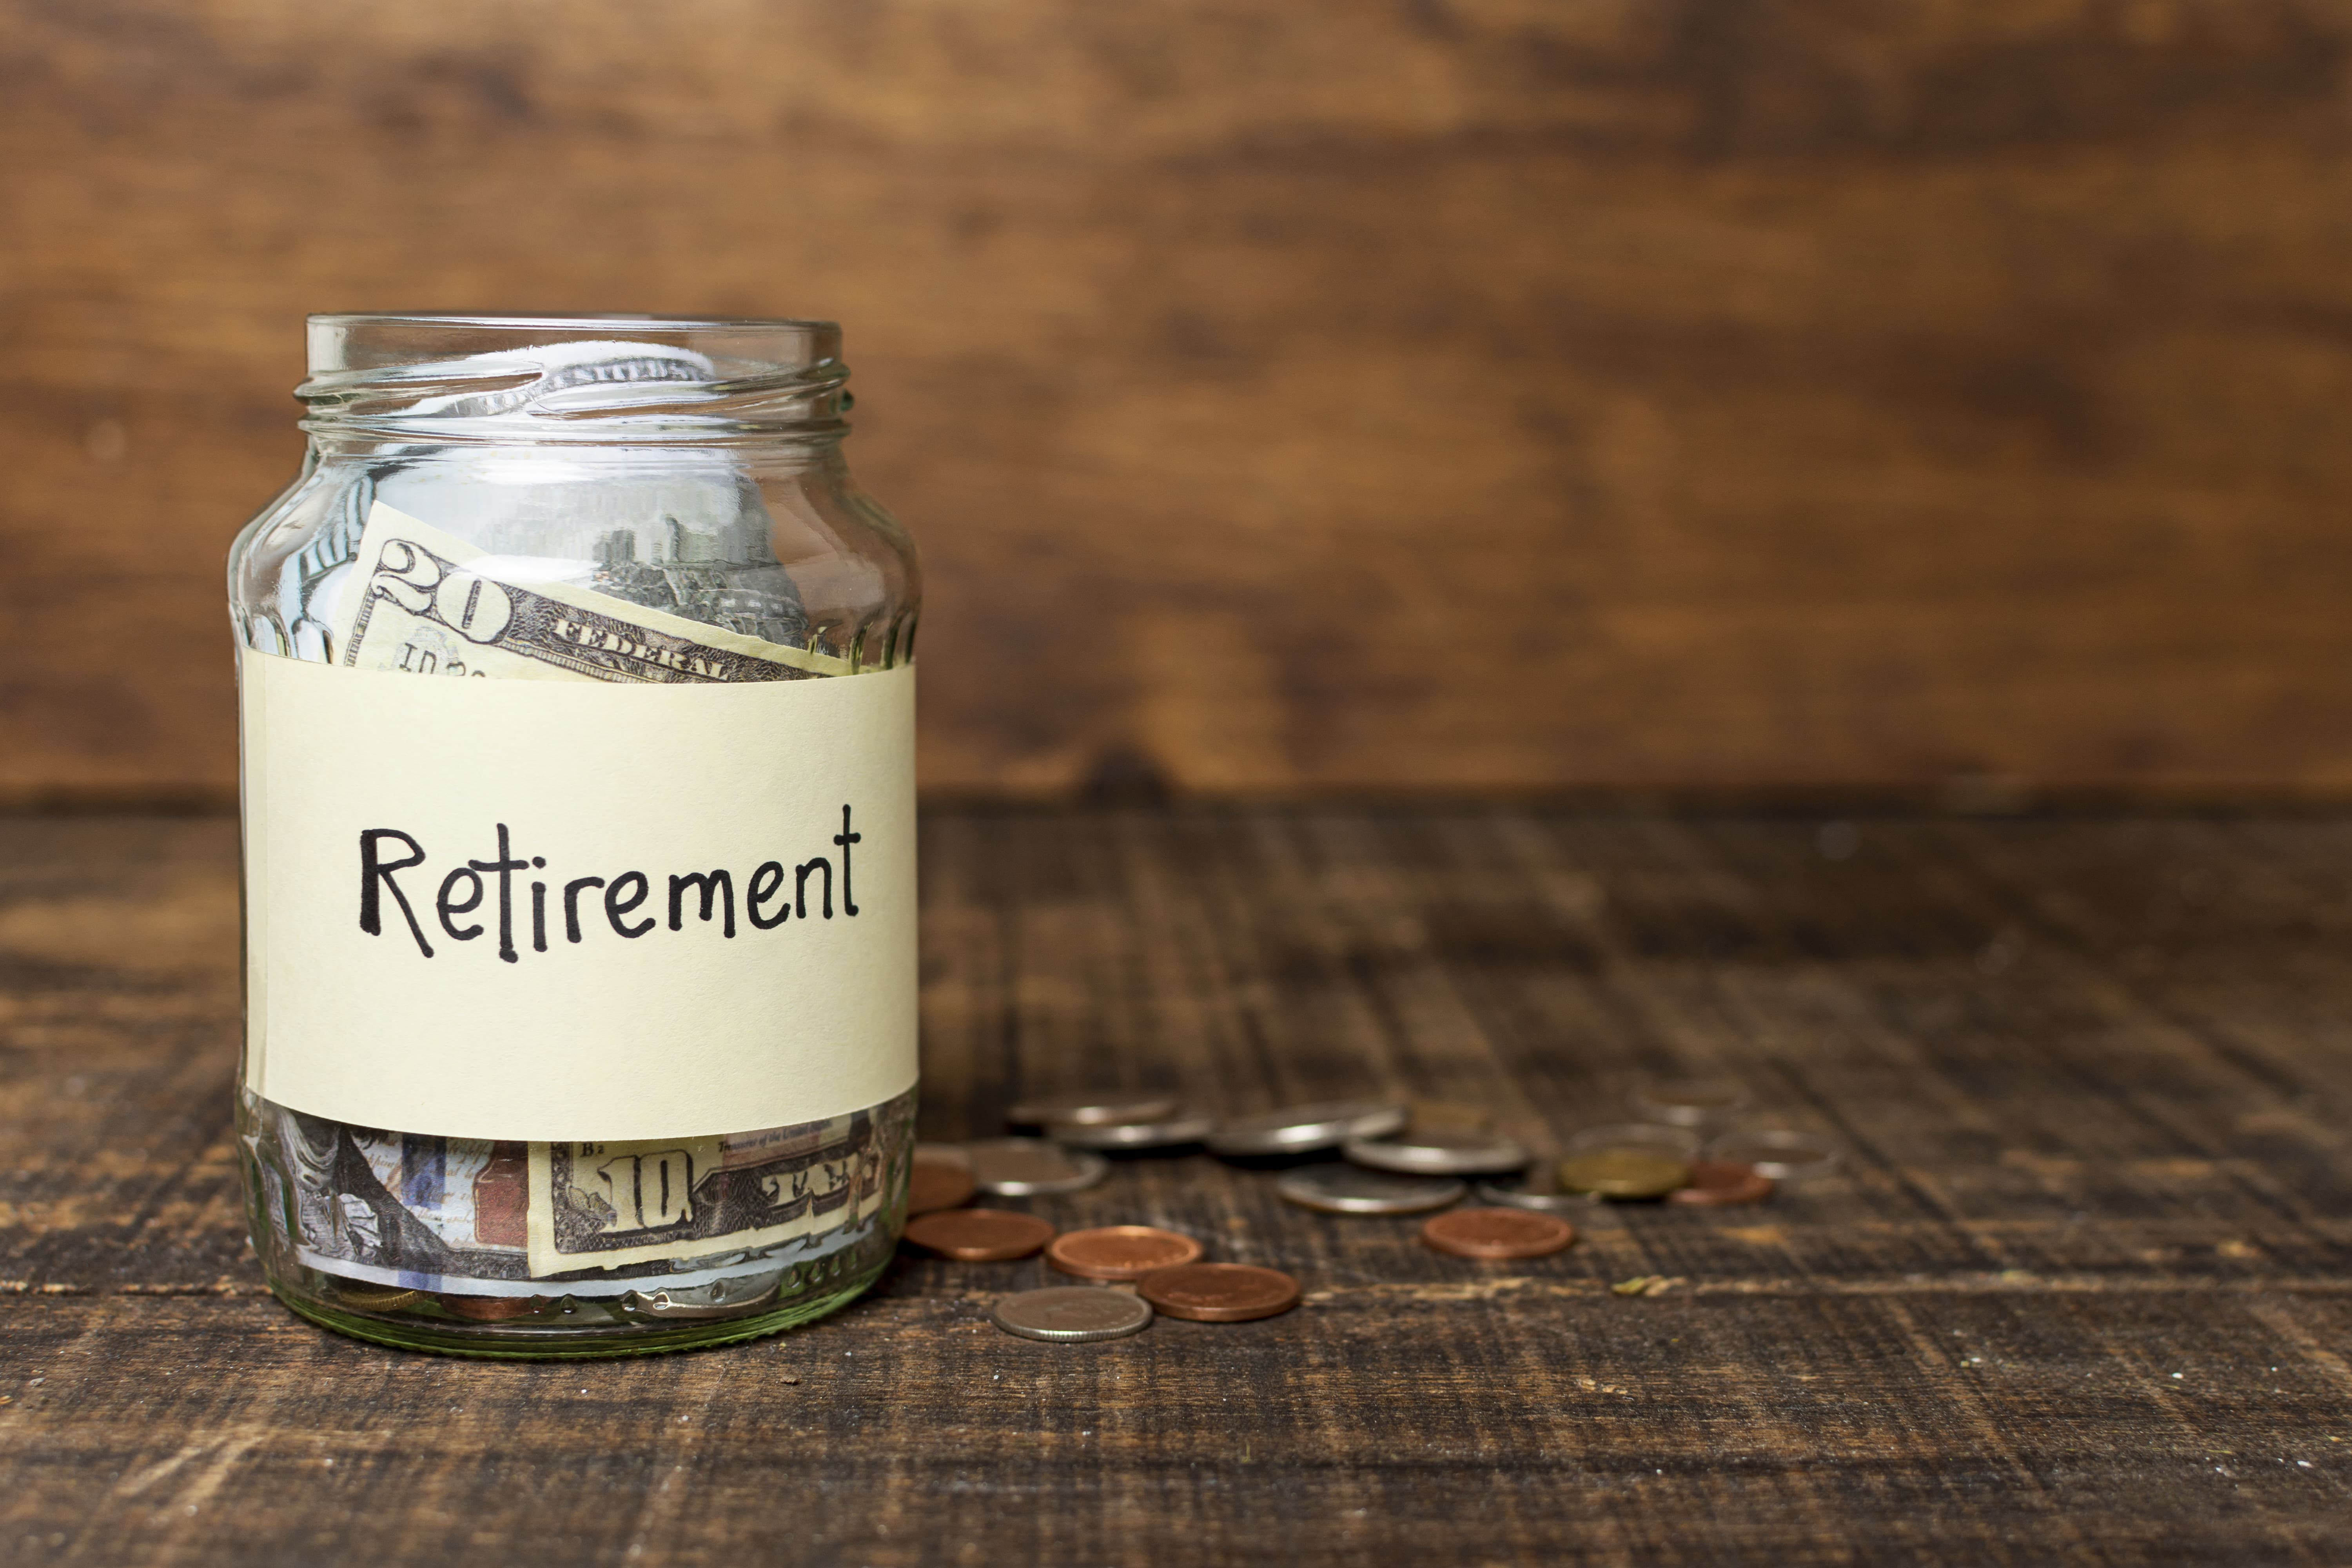 Retirement funds on a glass jar